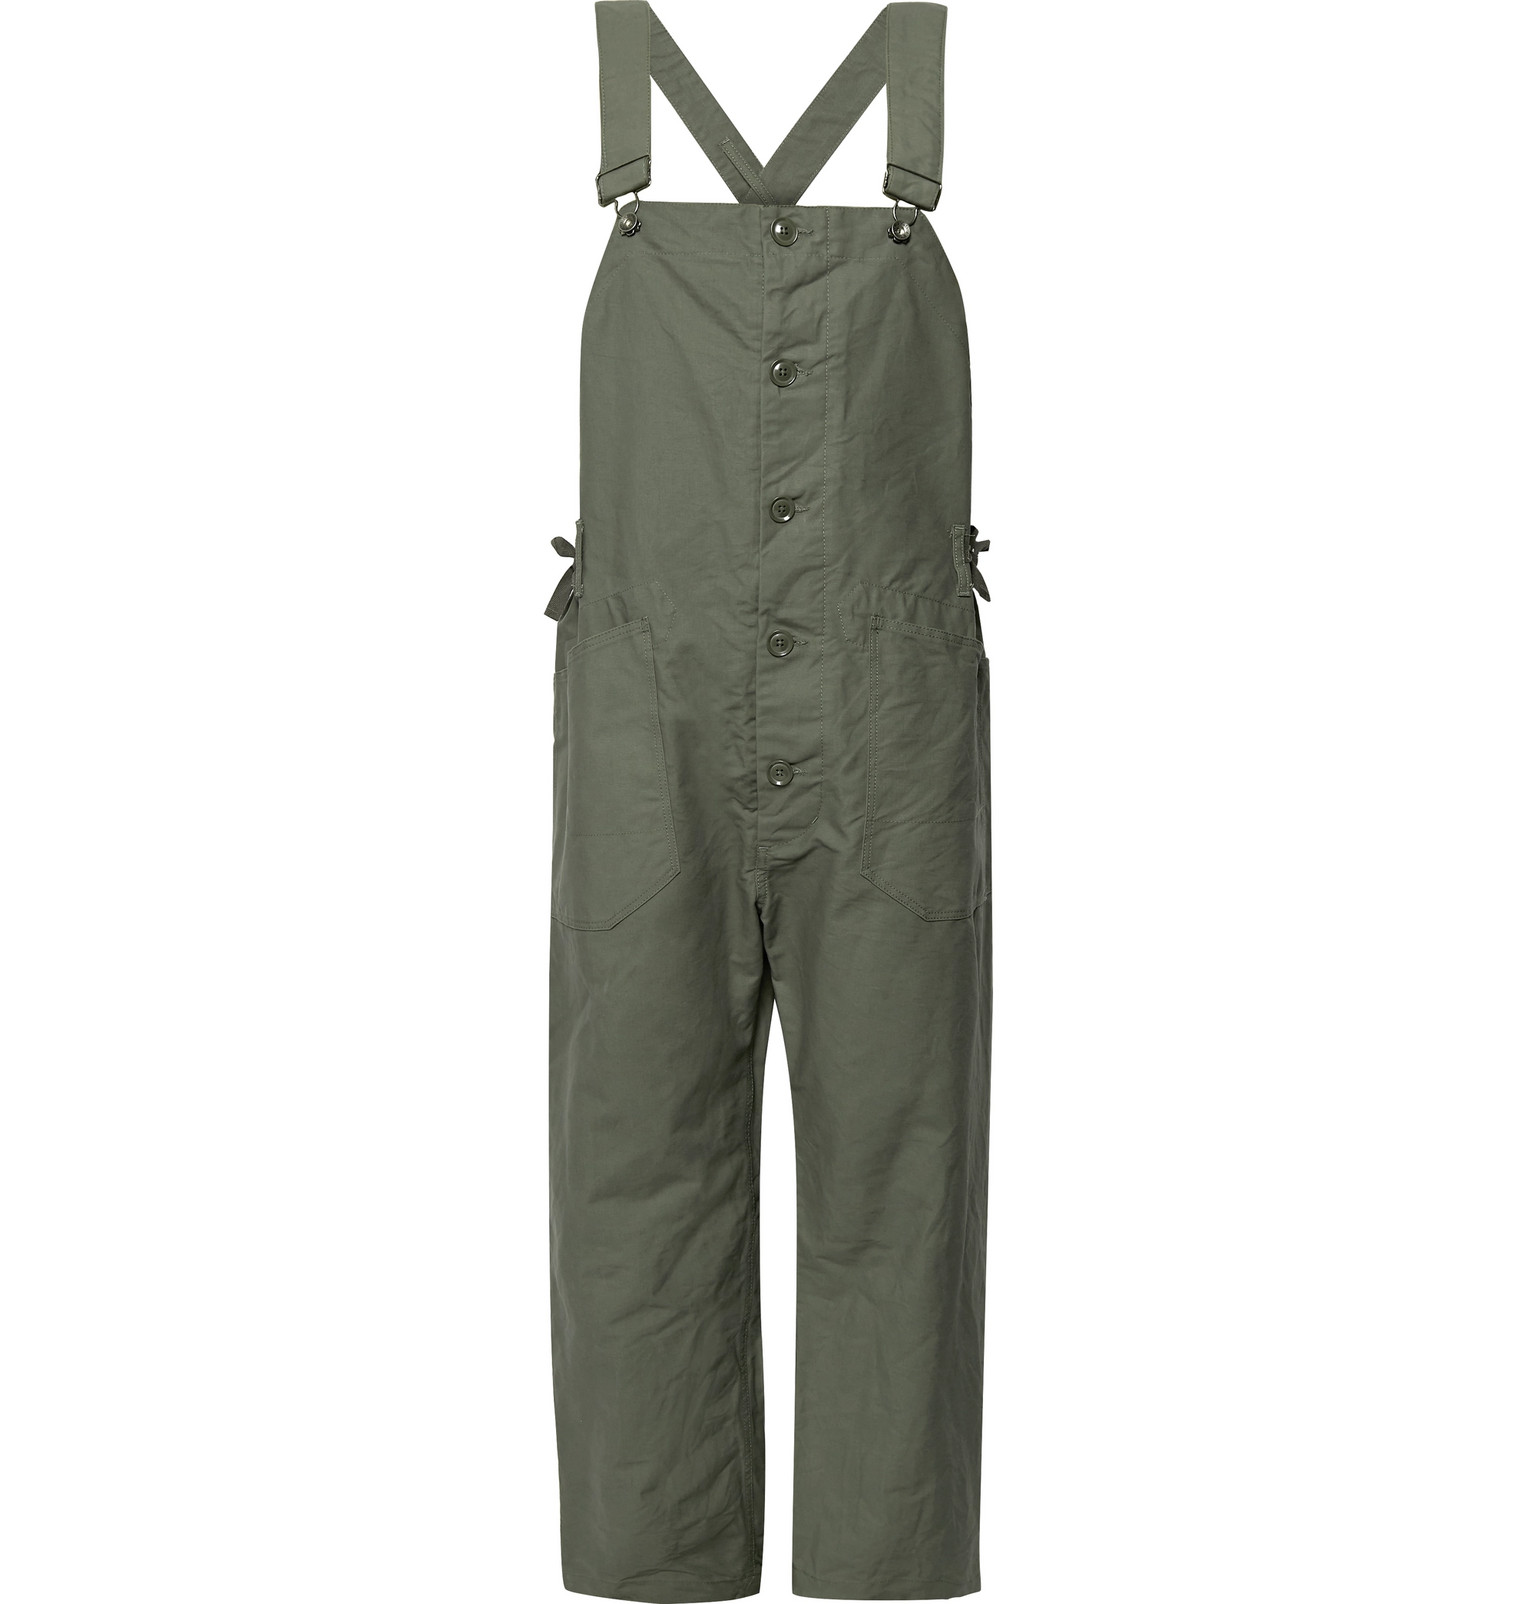 engineered garments overalls engineered garments pants